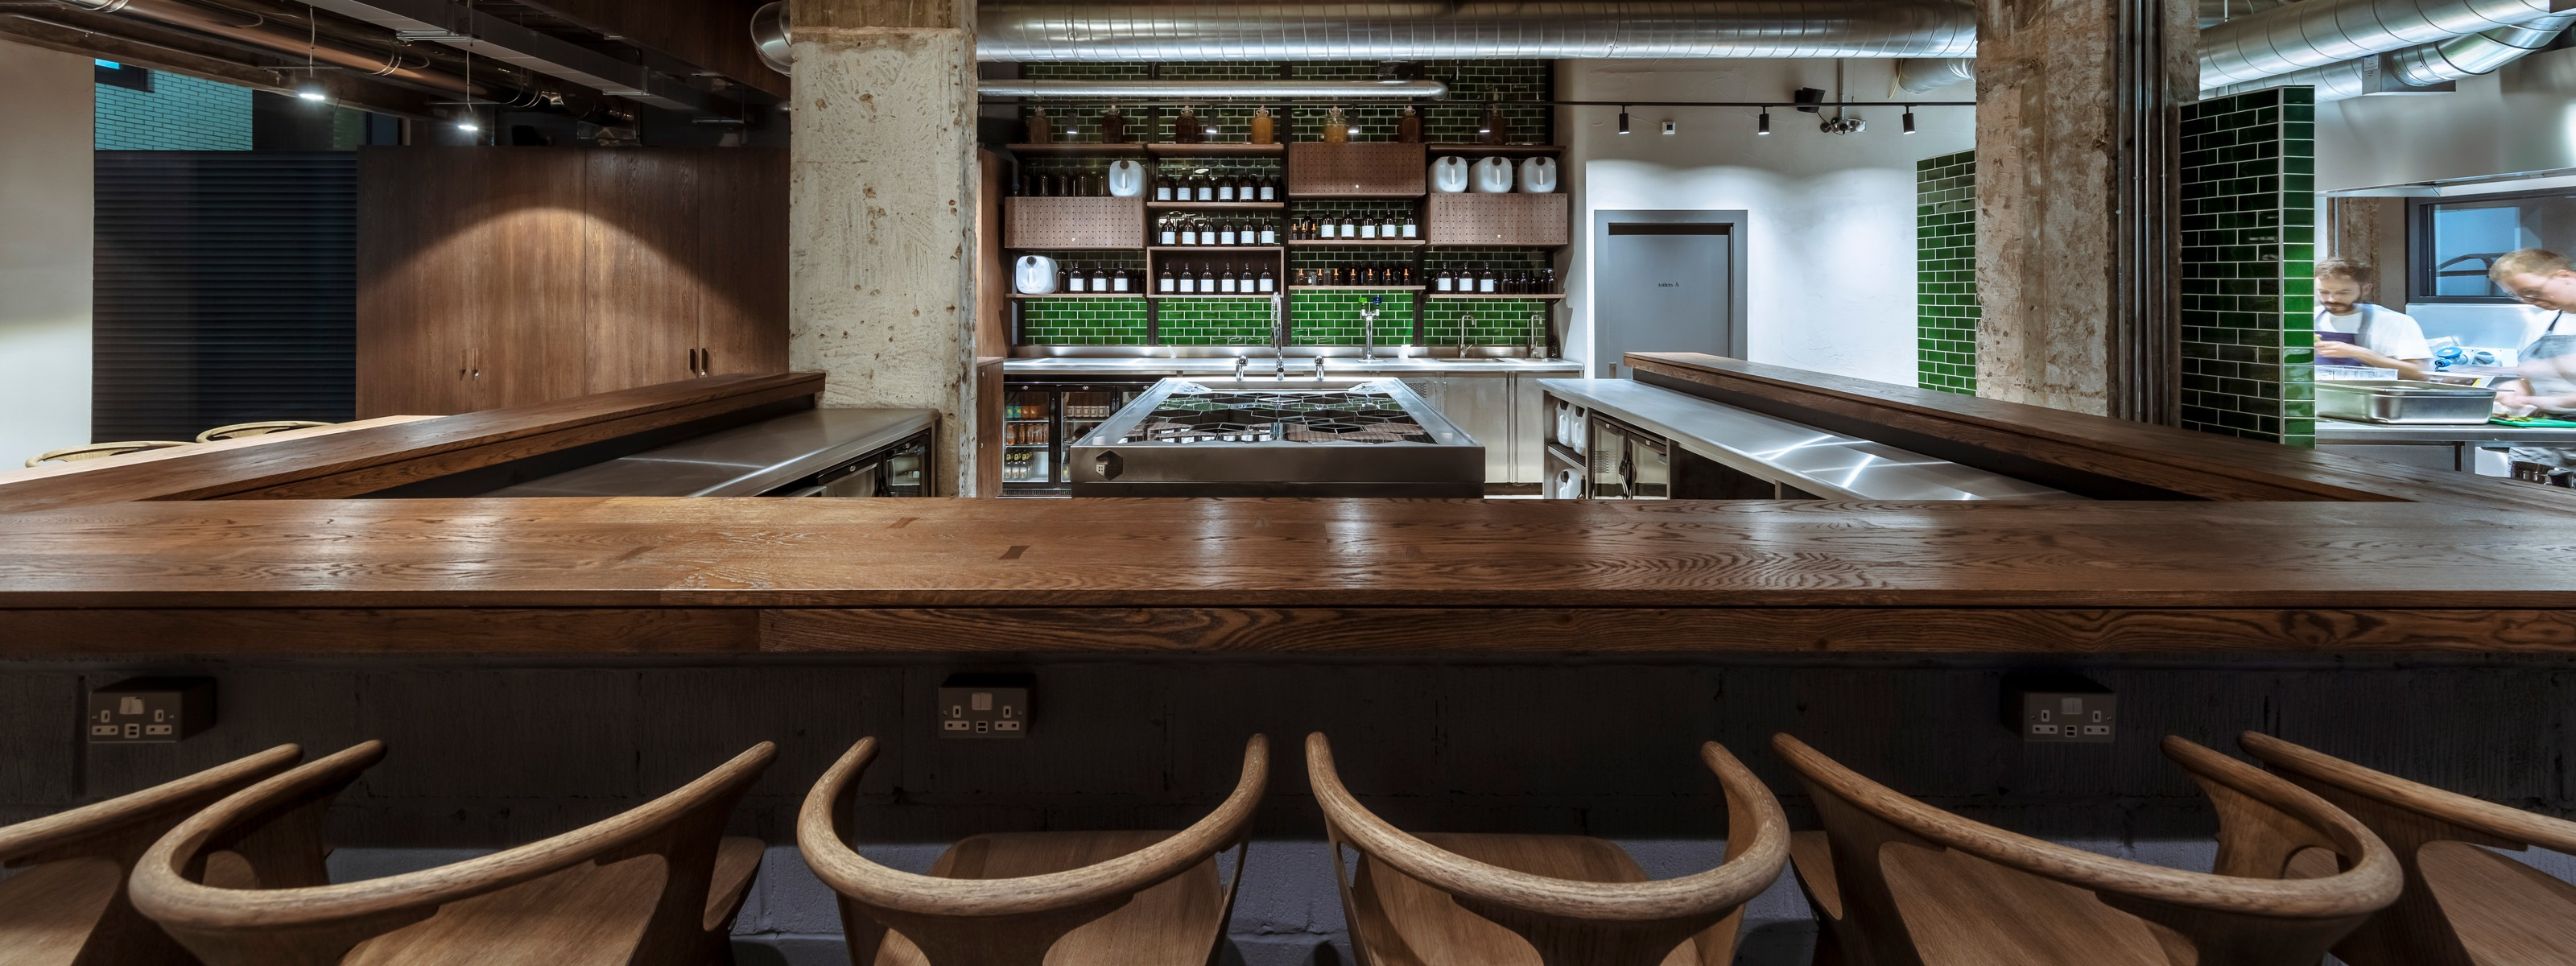 Where To Eat When You Don't Want To Make Any Decisions - London - The Infatuation